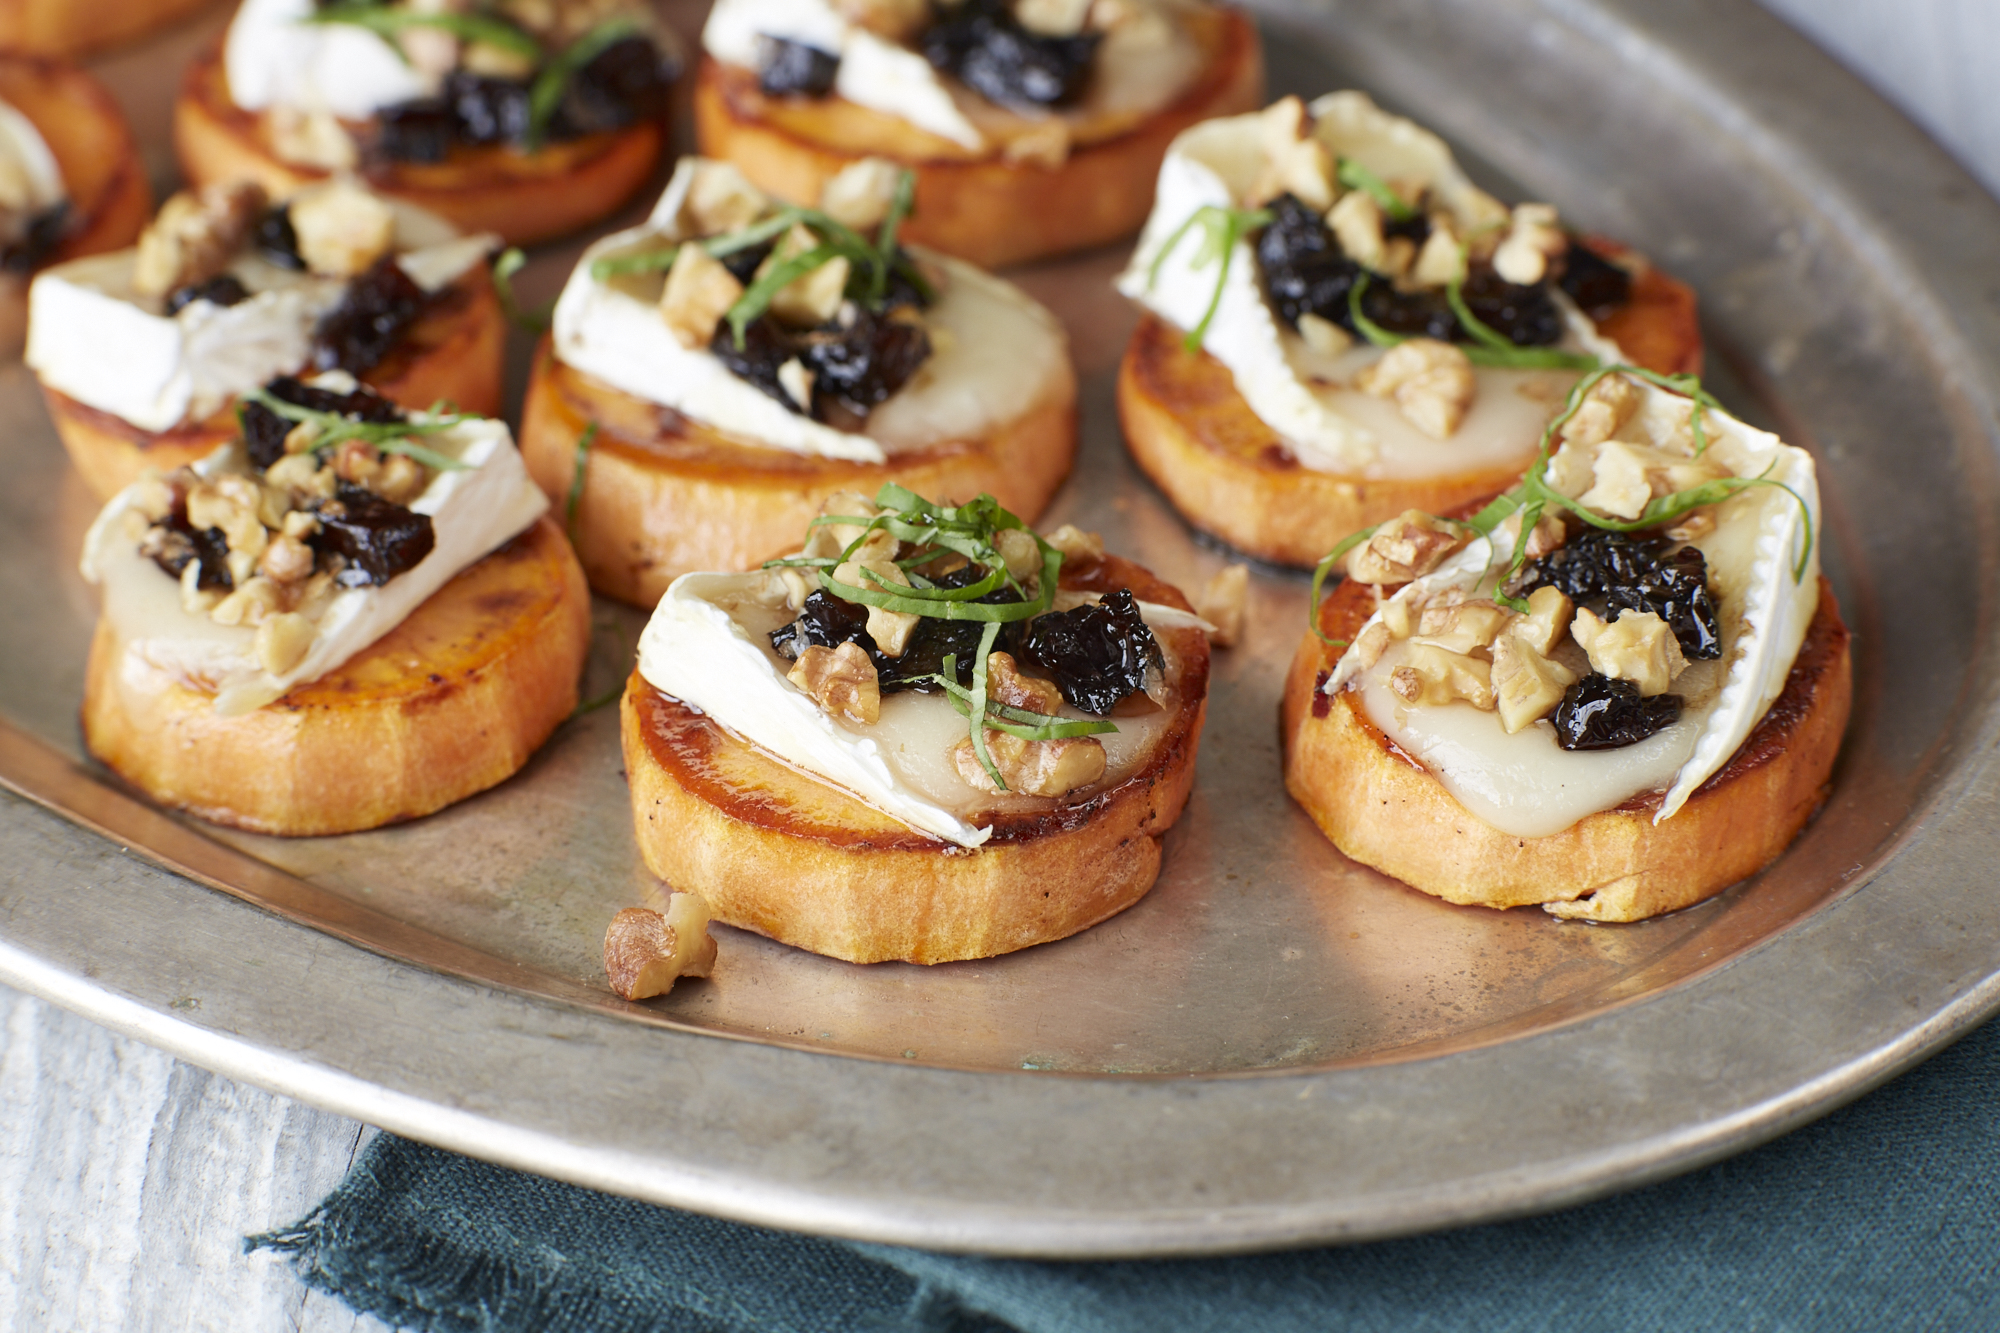 Prune, Yam and Brie Crostini